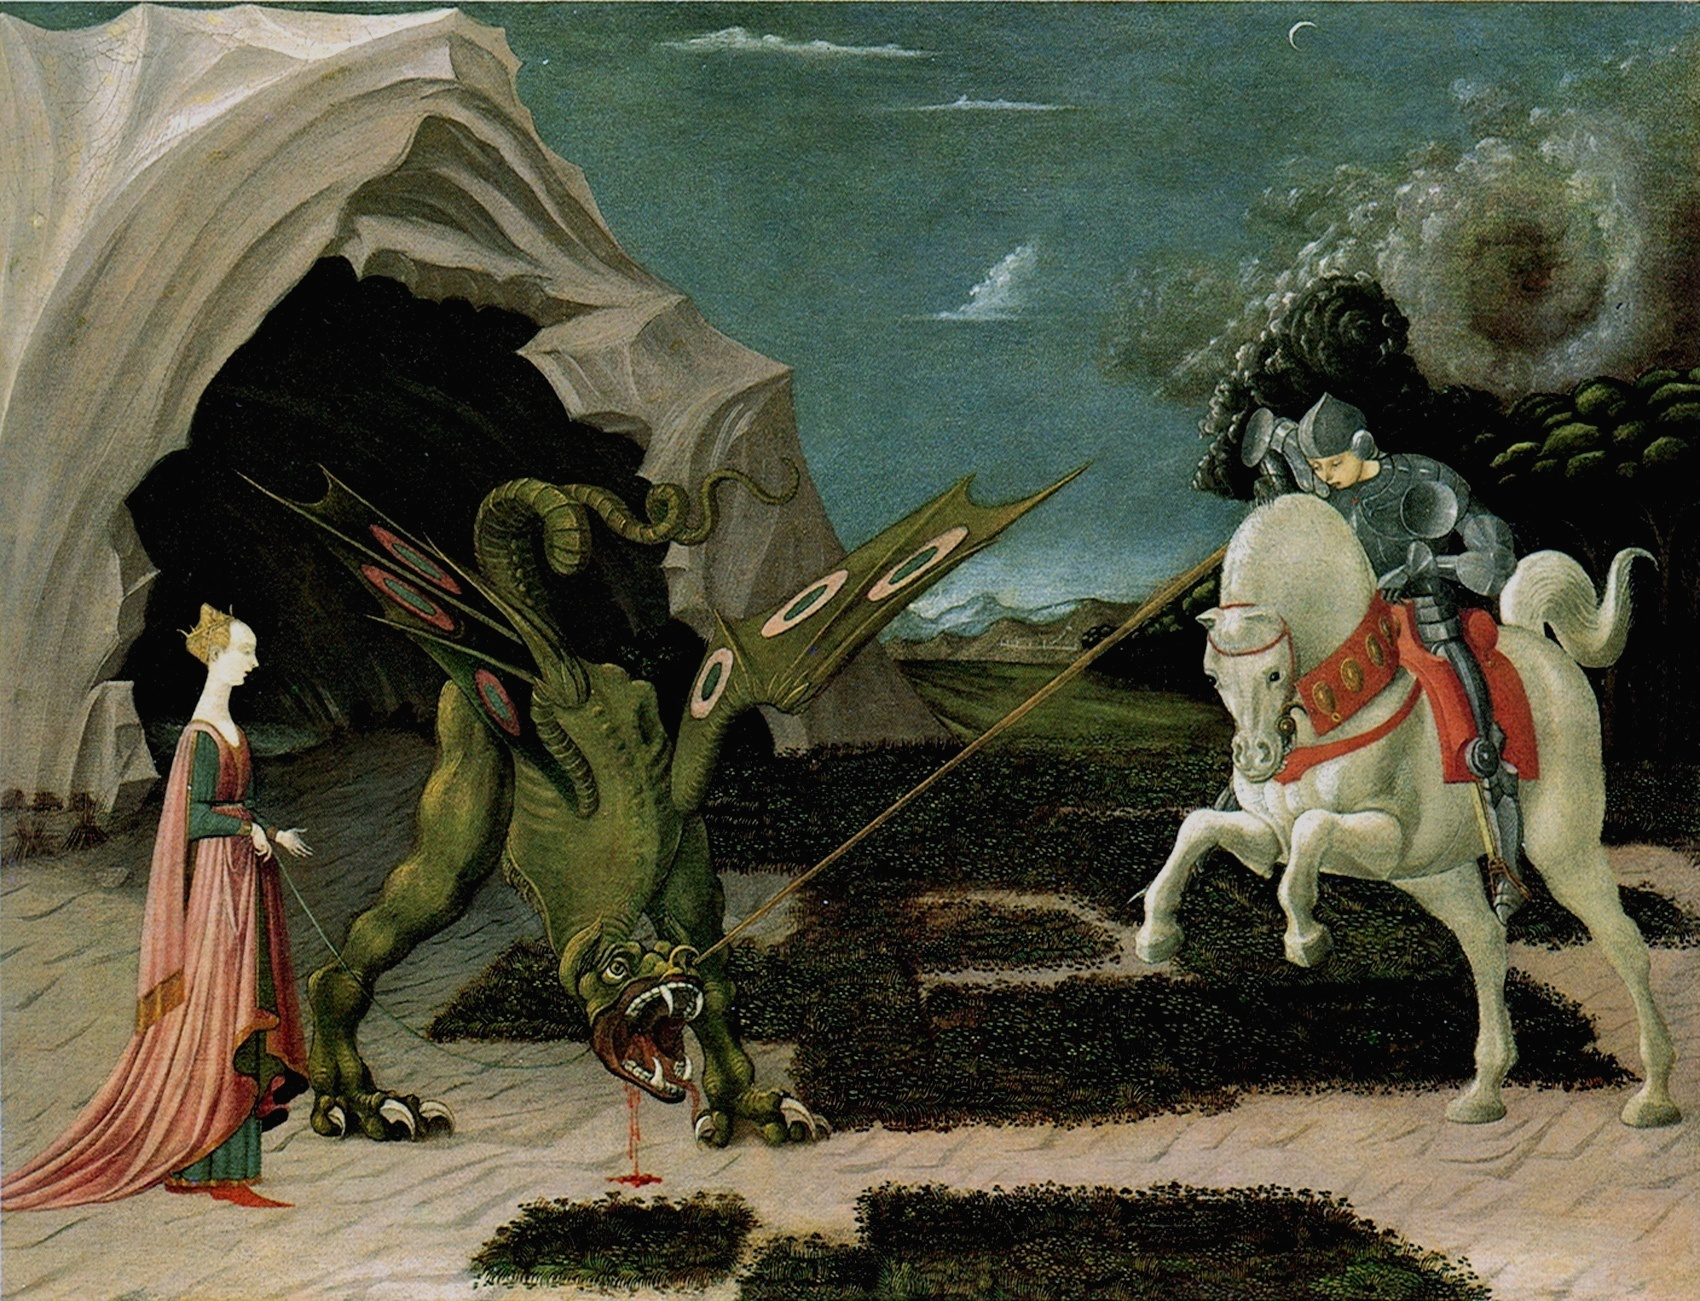 https://upload.wikimedia.org/wikipedia/commons/e/ed/Paolo_Uccello_047b.jpg